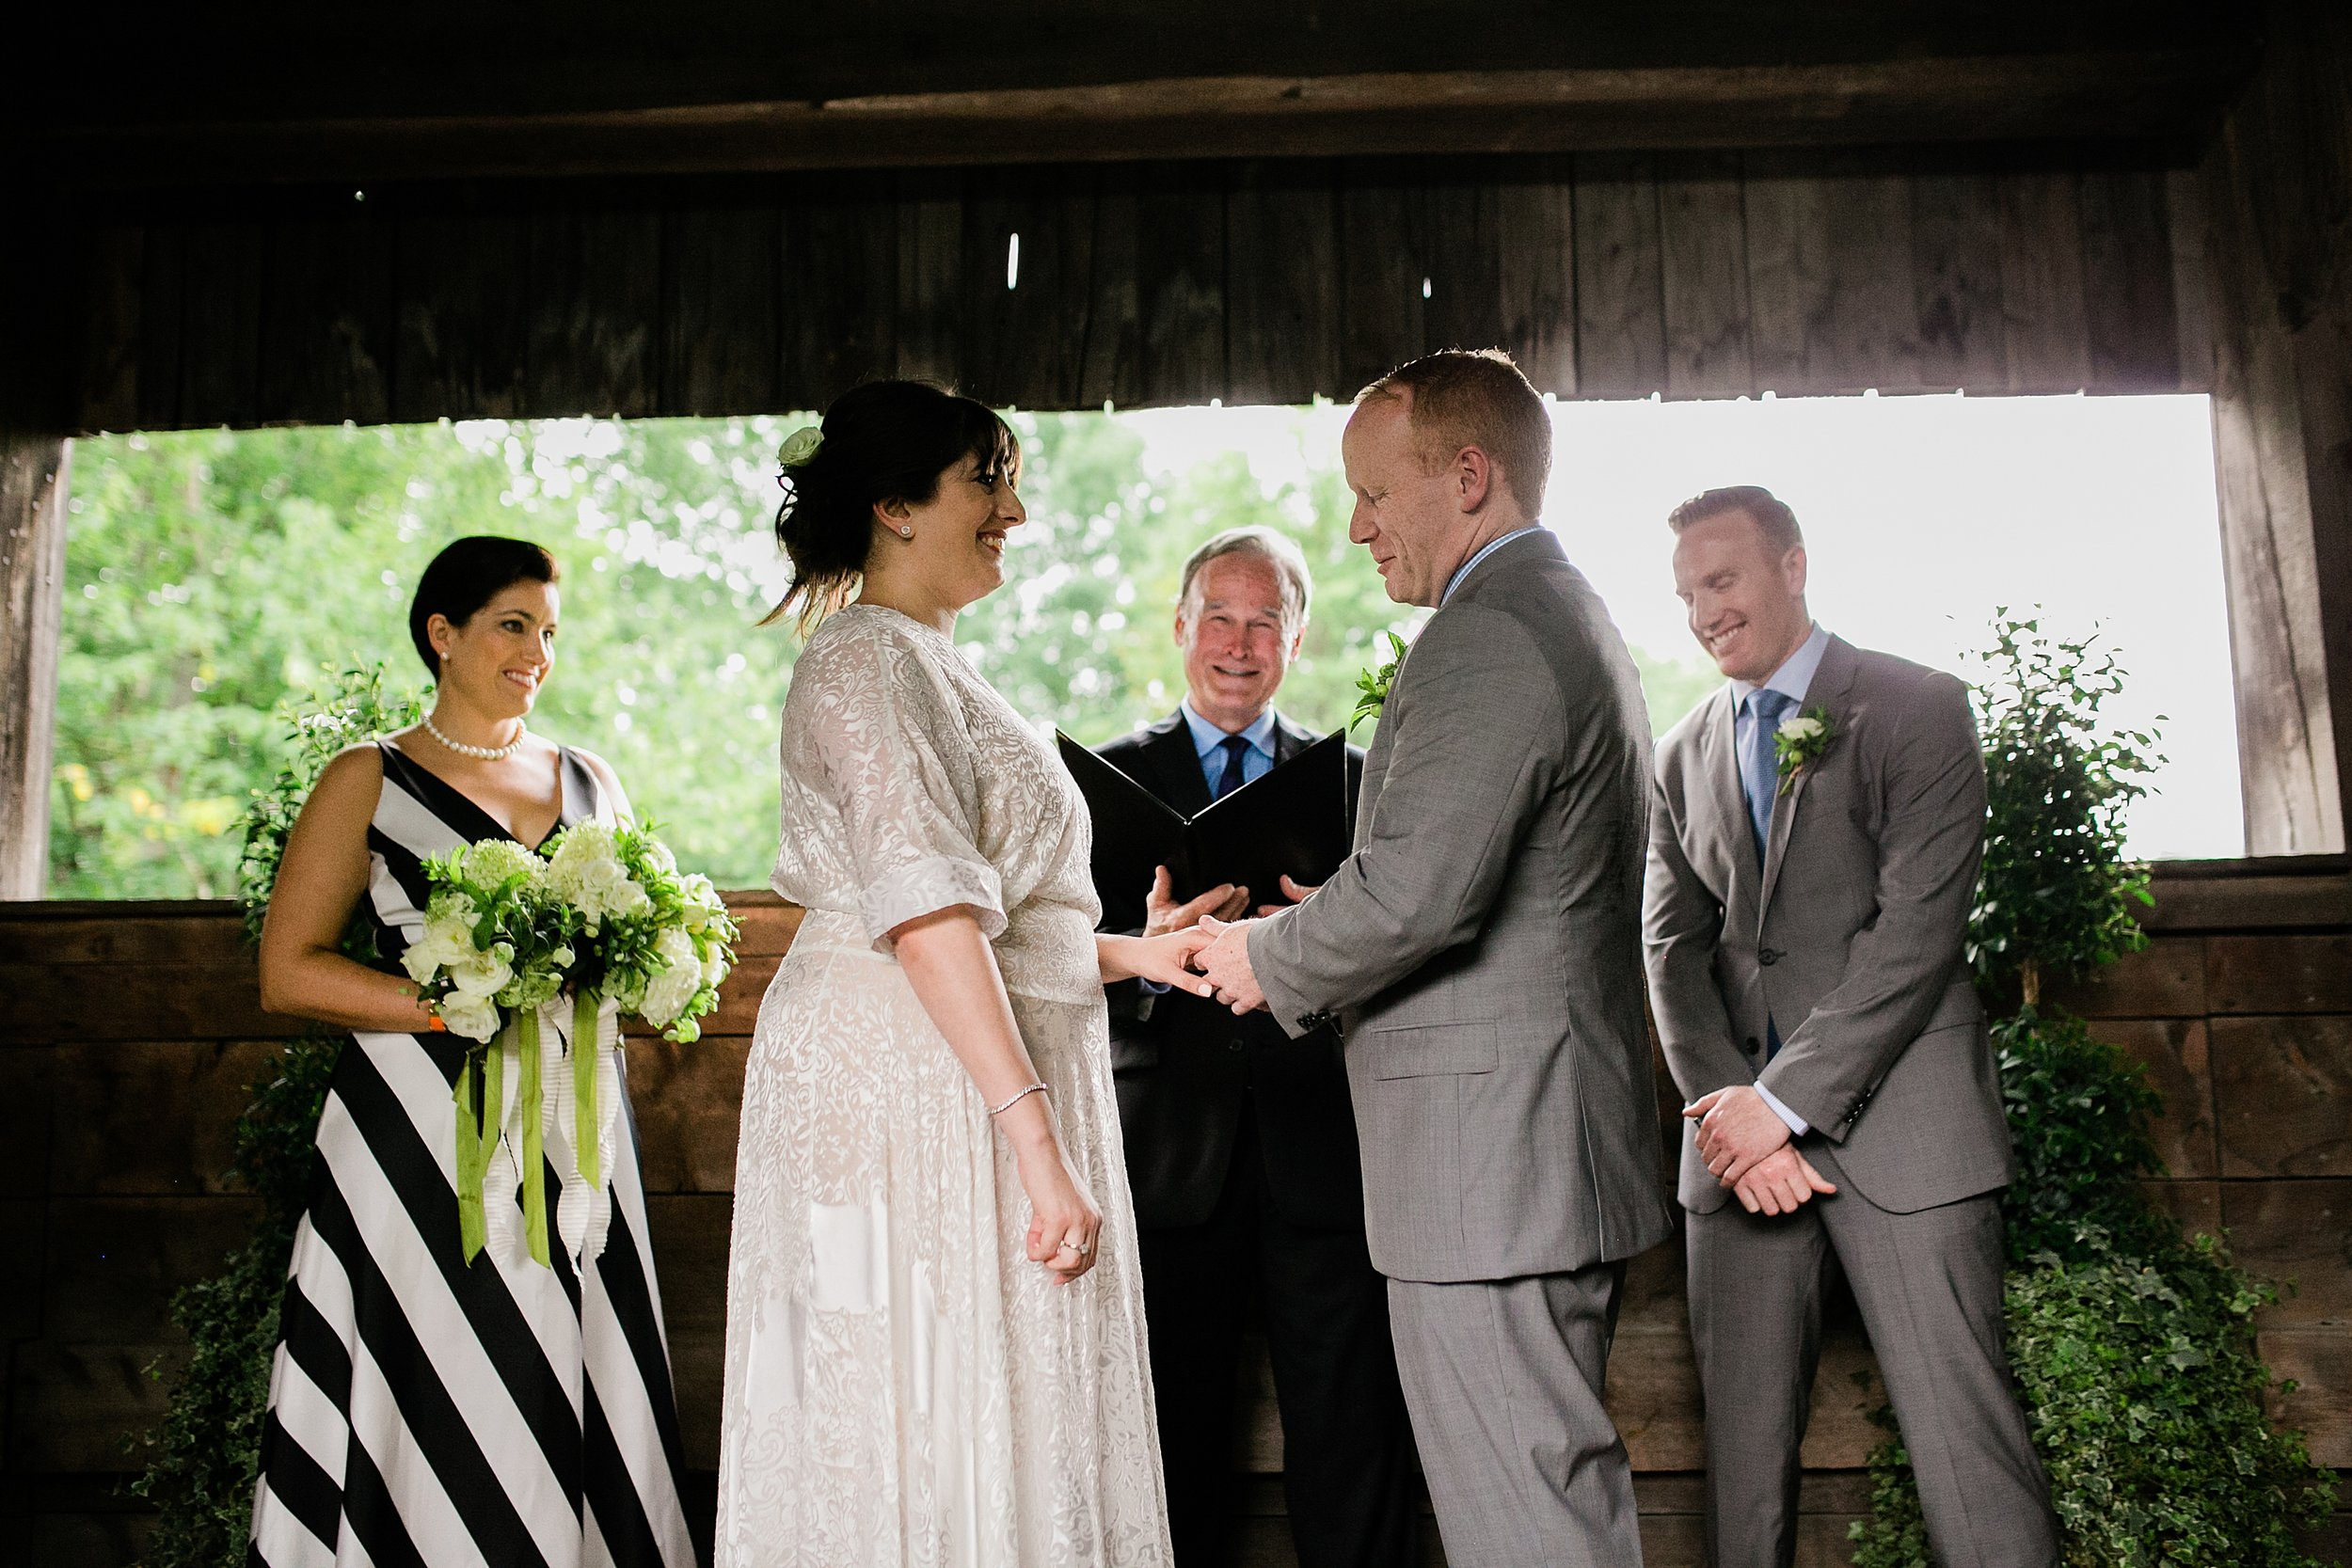 030-los-angeles-wedding-photography-todd-danforth-vermont.jpg